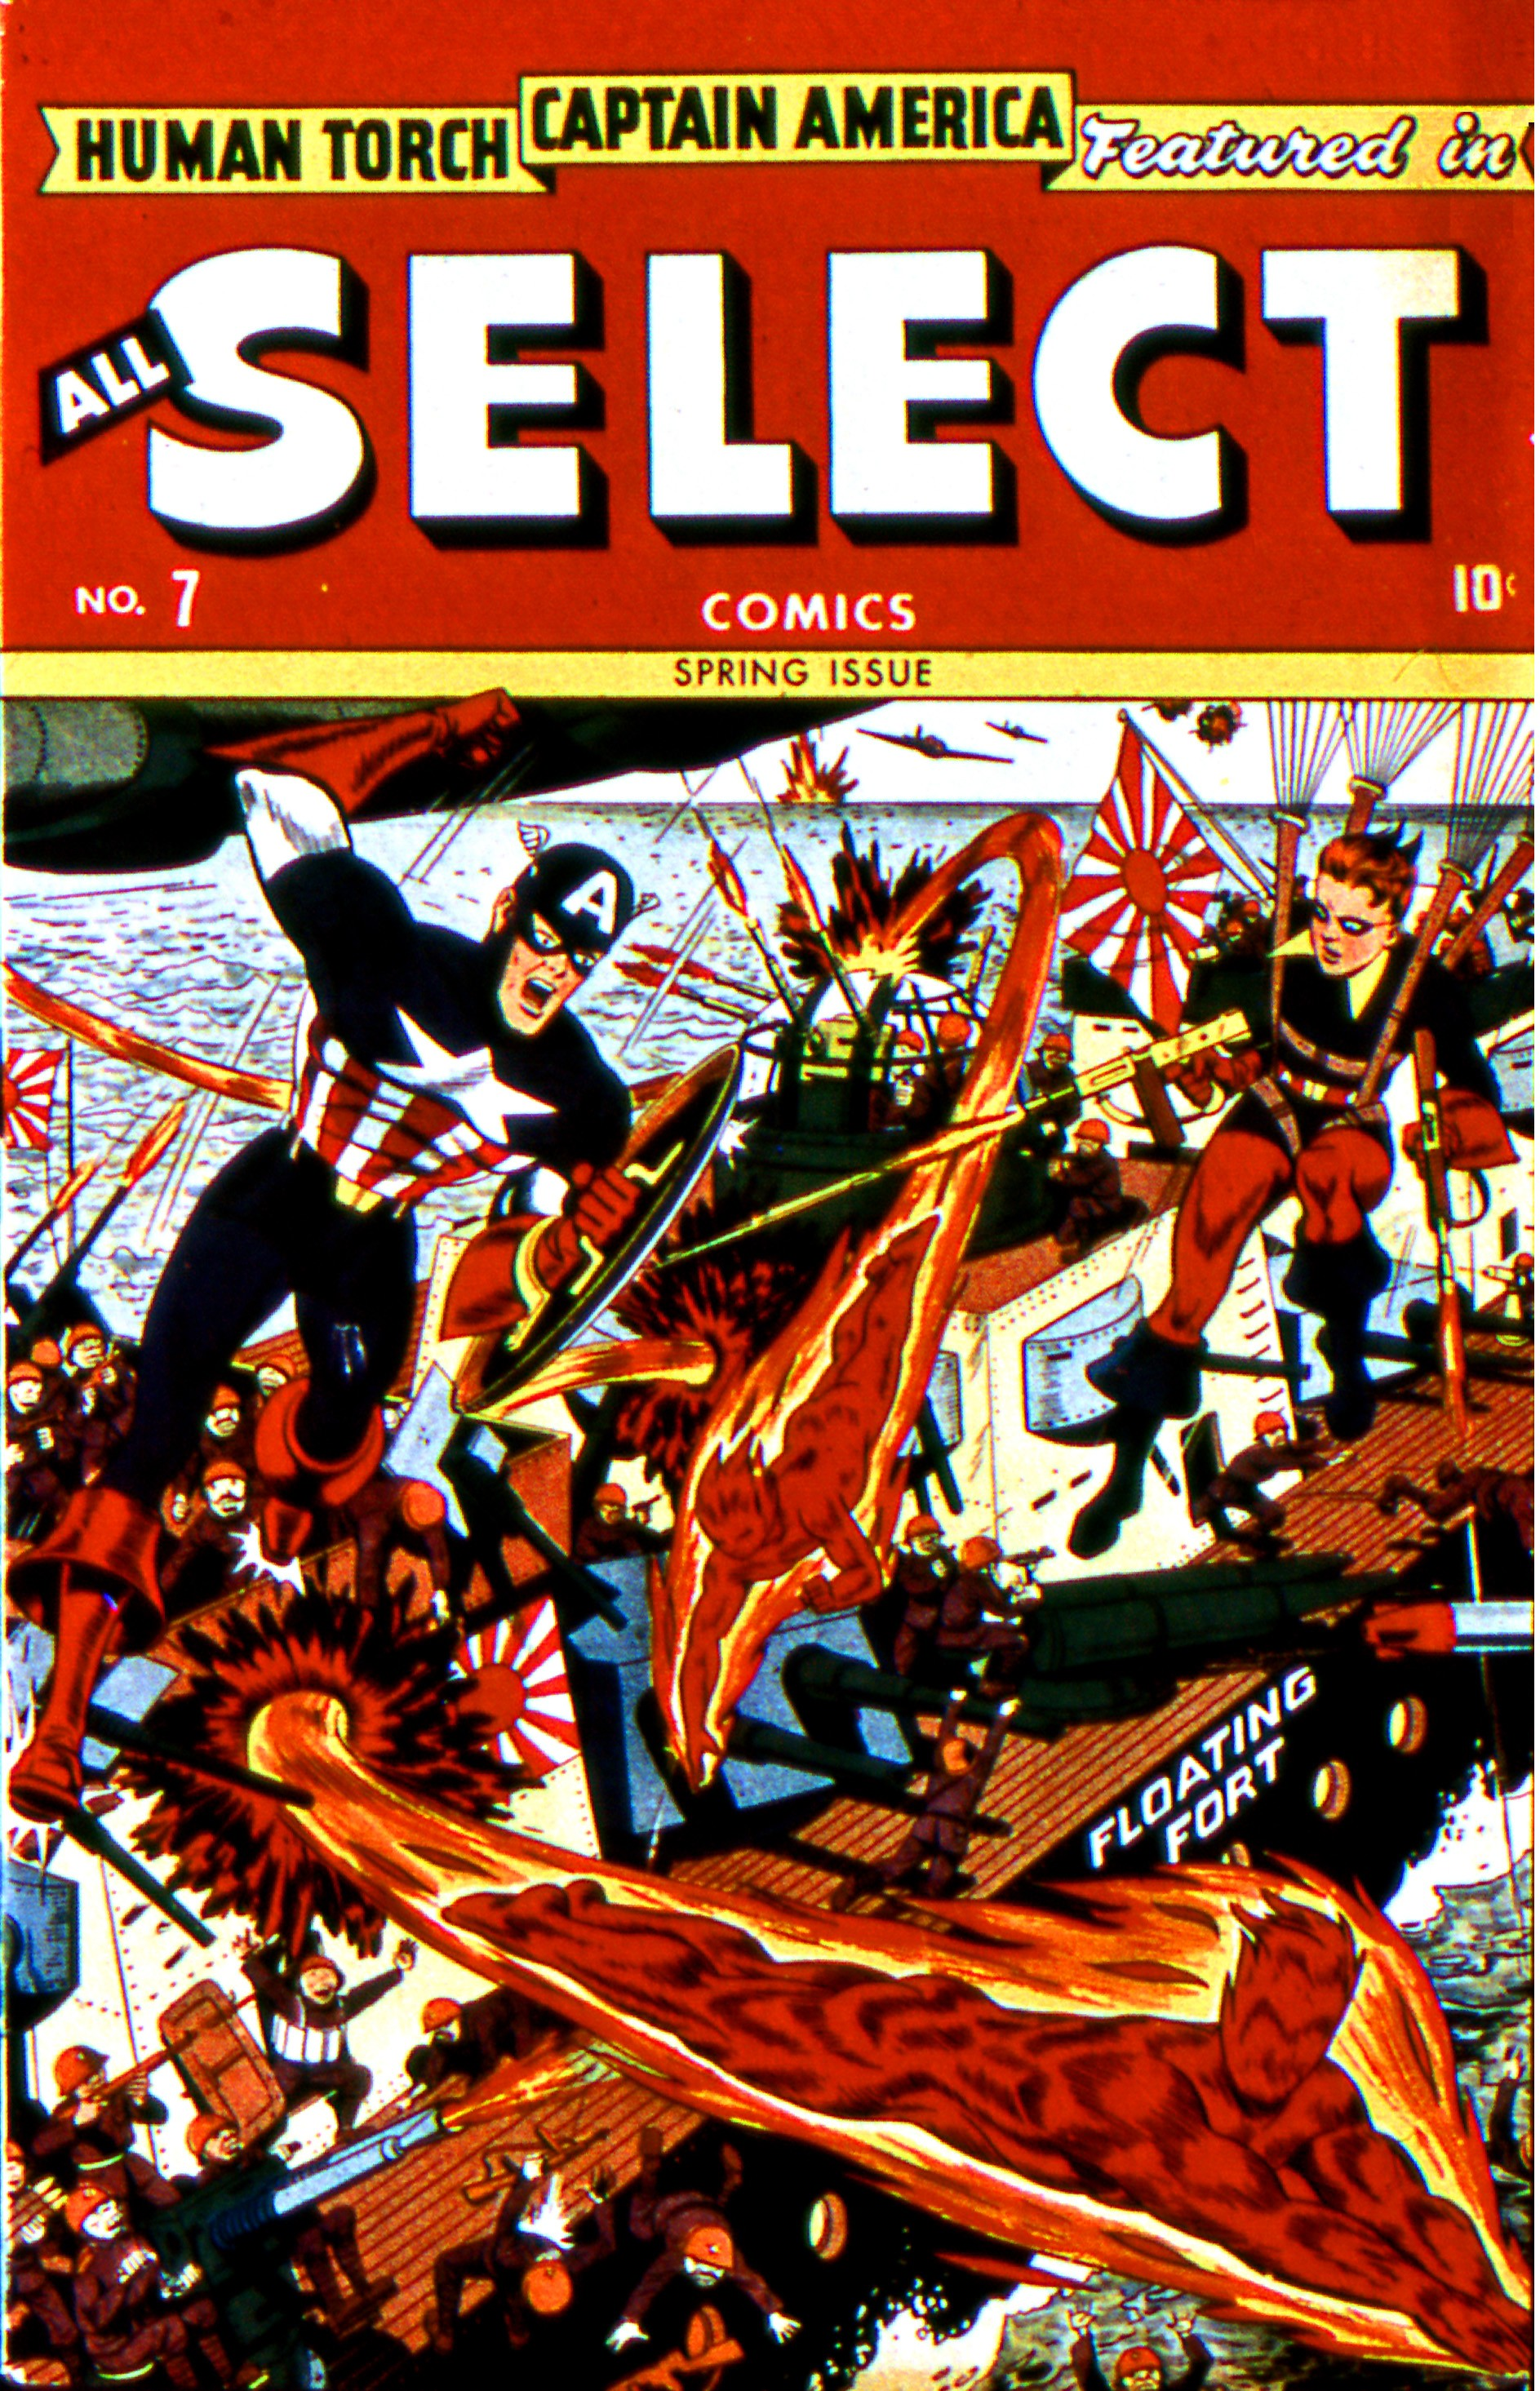 Read online All-Select Comics comic -  Issue #7 - 2